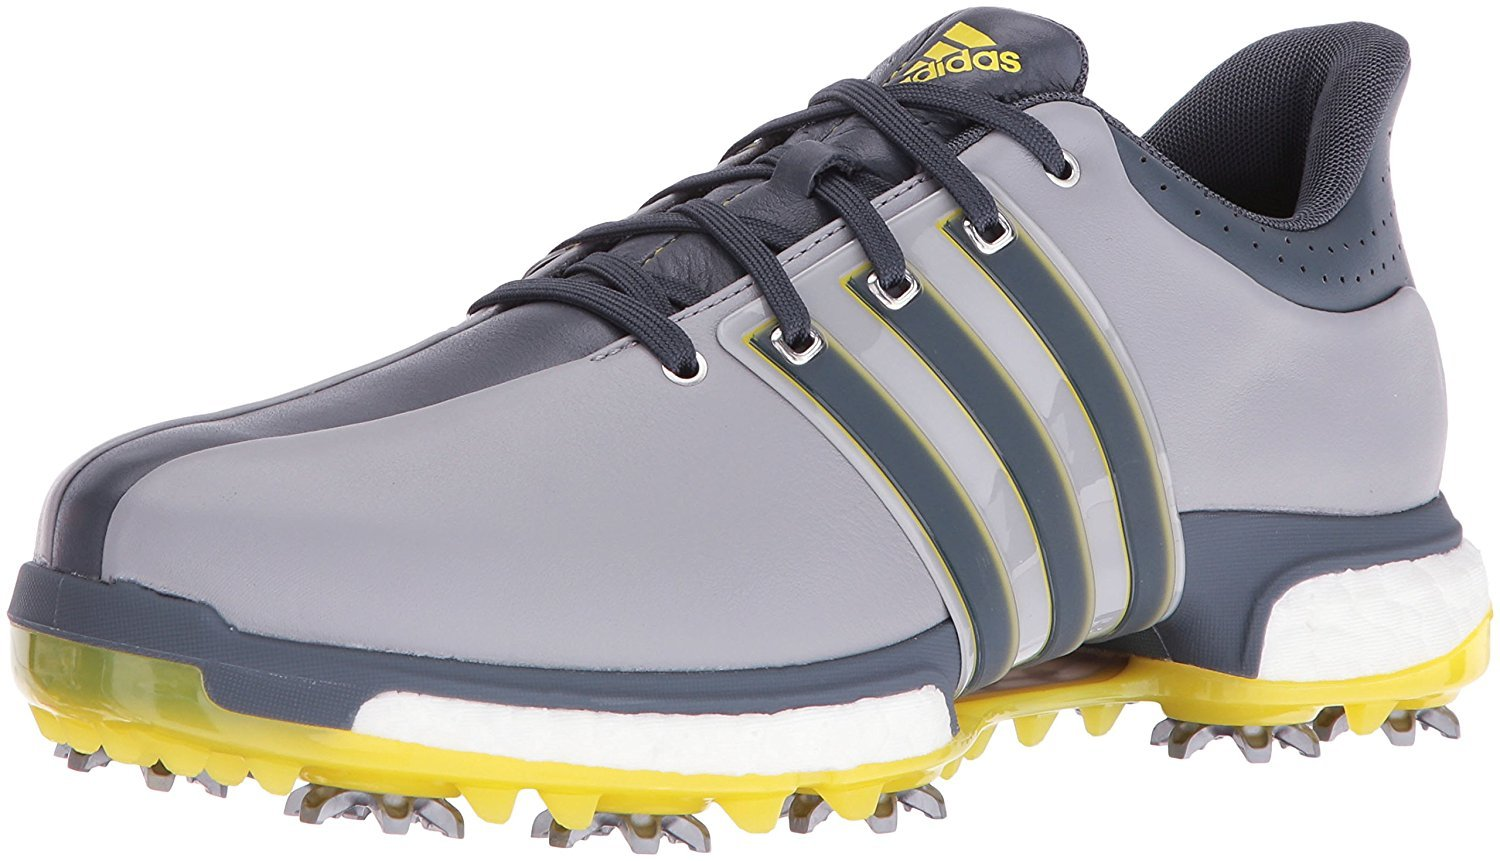 adidas Men's Tour 360 Boost WD Ltonix Golf Shoe, Grey, 8 2E US by adidas